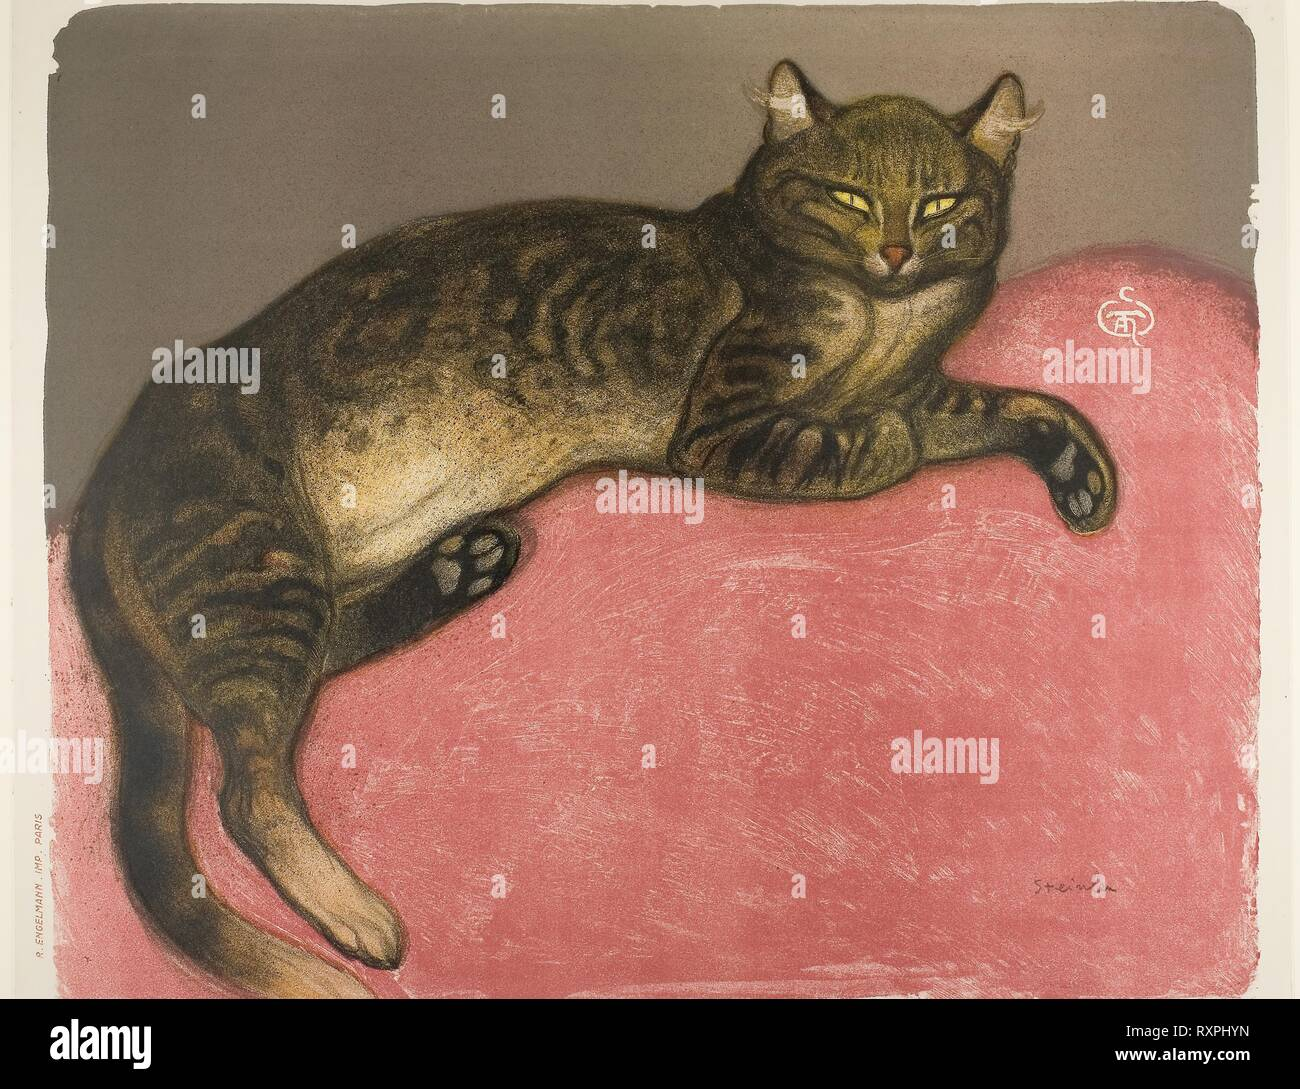 Winter: Cat on a Cushion. Théophile-Alexandre Steinlen; French, born Switzerland, 1859-1923. Date: 1909. Dimensions: 494 × 589 mm (image); 503 × 621 mm (sheet). Lithograph in 6 colors (red, ochre, yellow, black, gray-brown, brown) from two stones, with scraping on stone, on ivory wove paper. Origin: France. Museum: The Chicago Art Institute. Author: Théophile-Alexandre Pierre Steinlen. - Stock Image